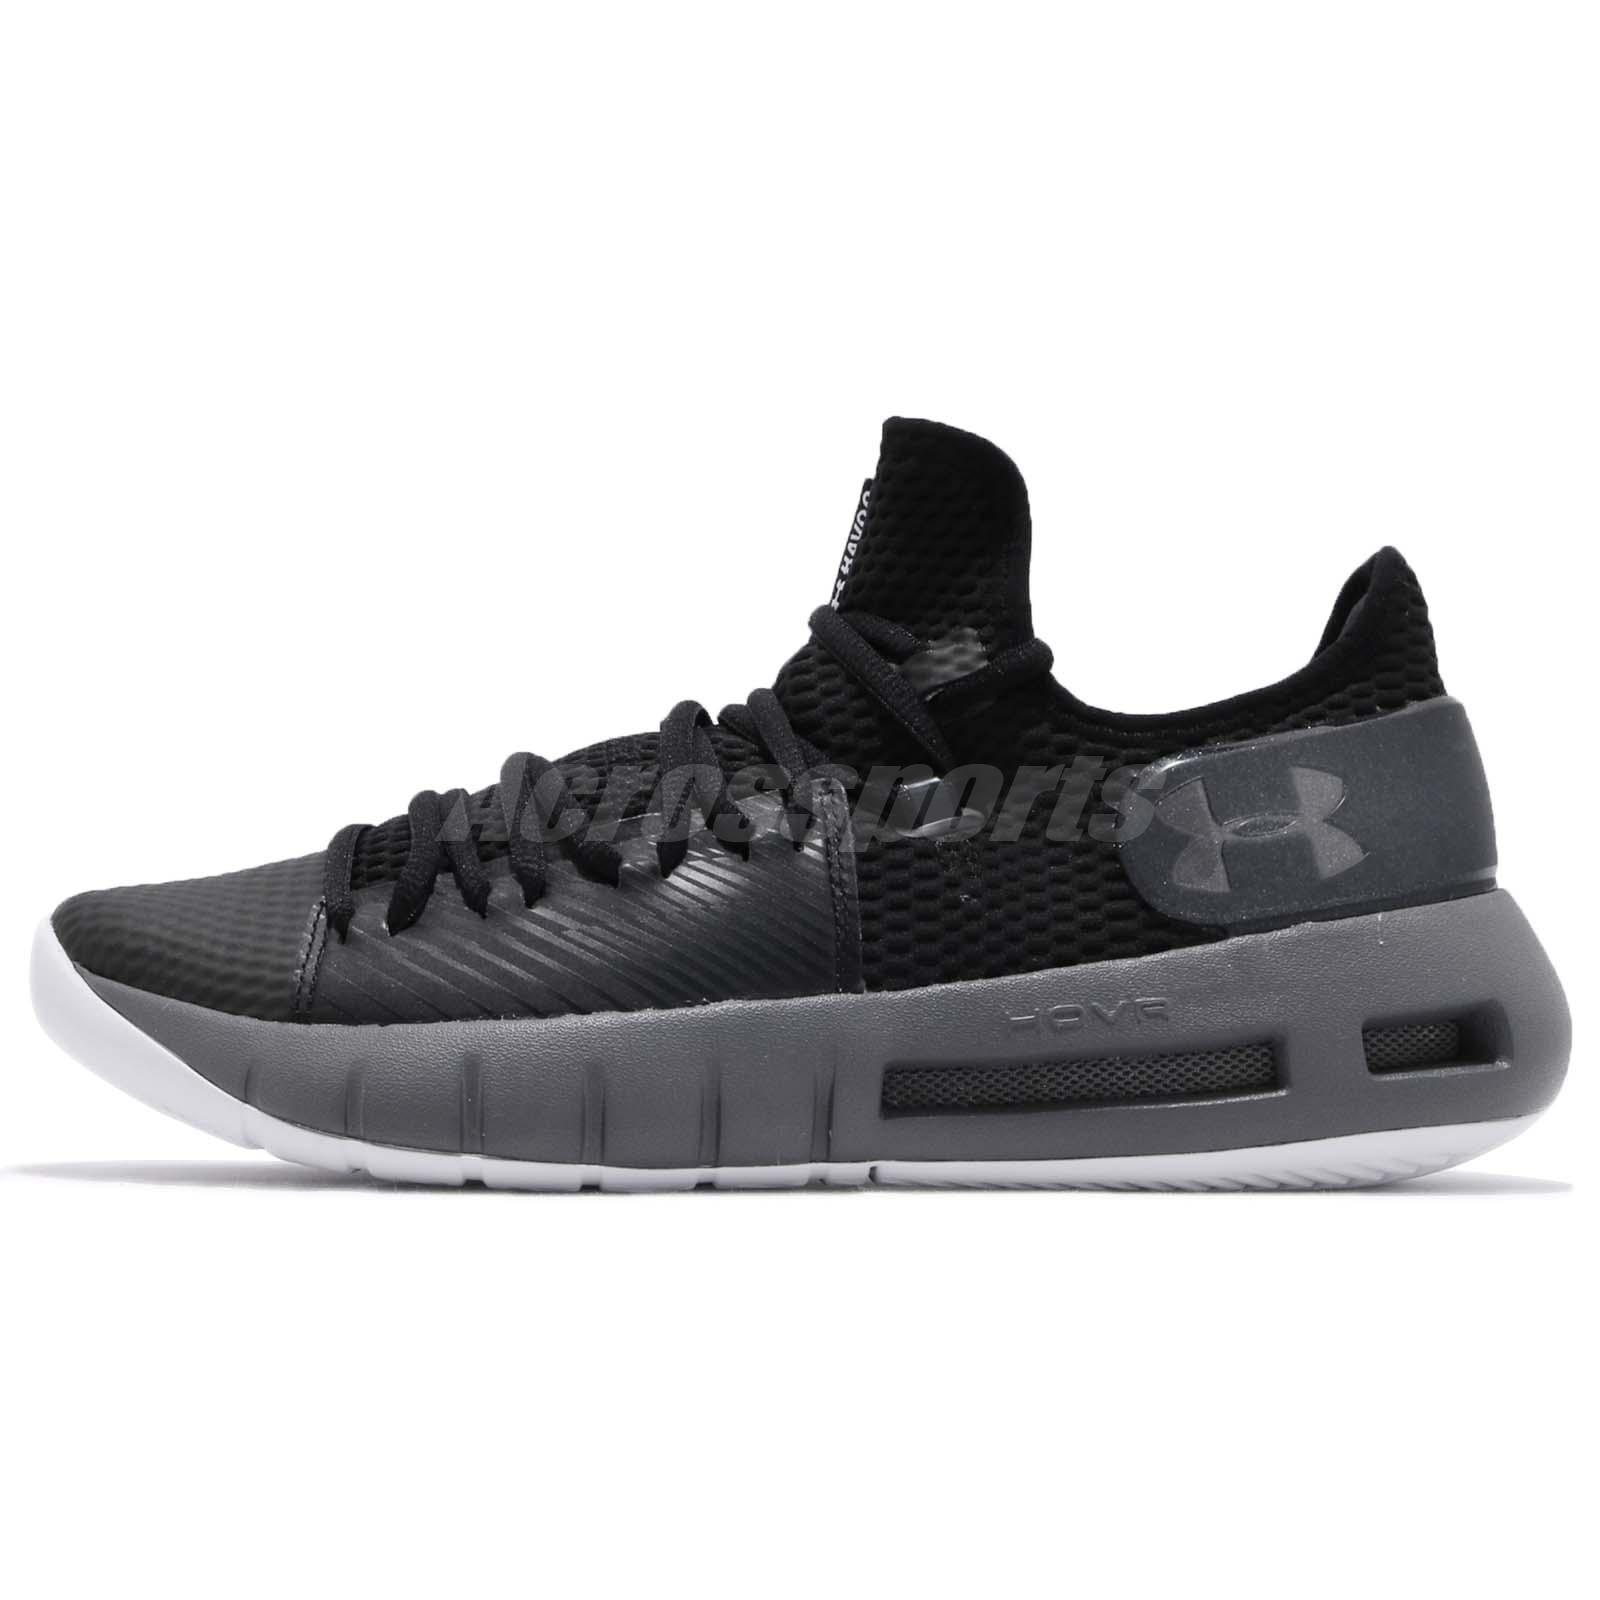 top design 3870a a6787 Details about Under Armour HOVR Havoc Low Black Grey Mens Basketball Shoes  3020618-002